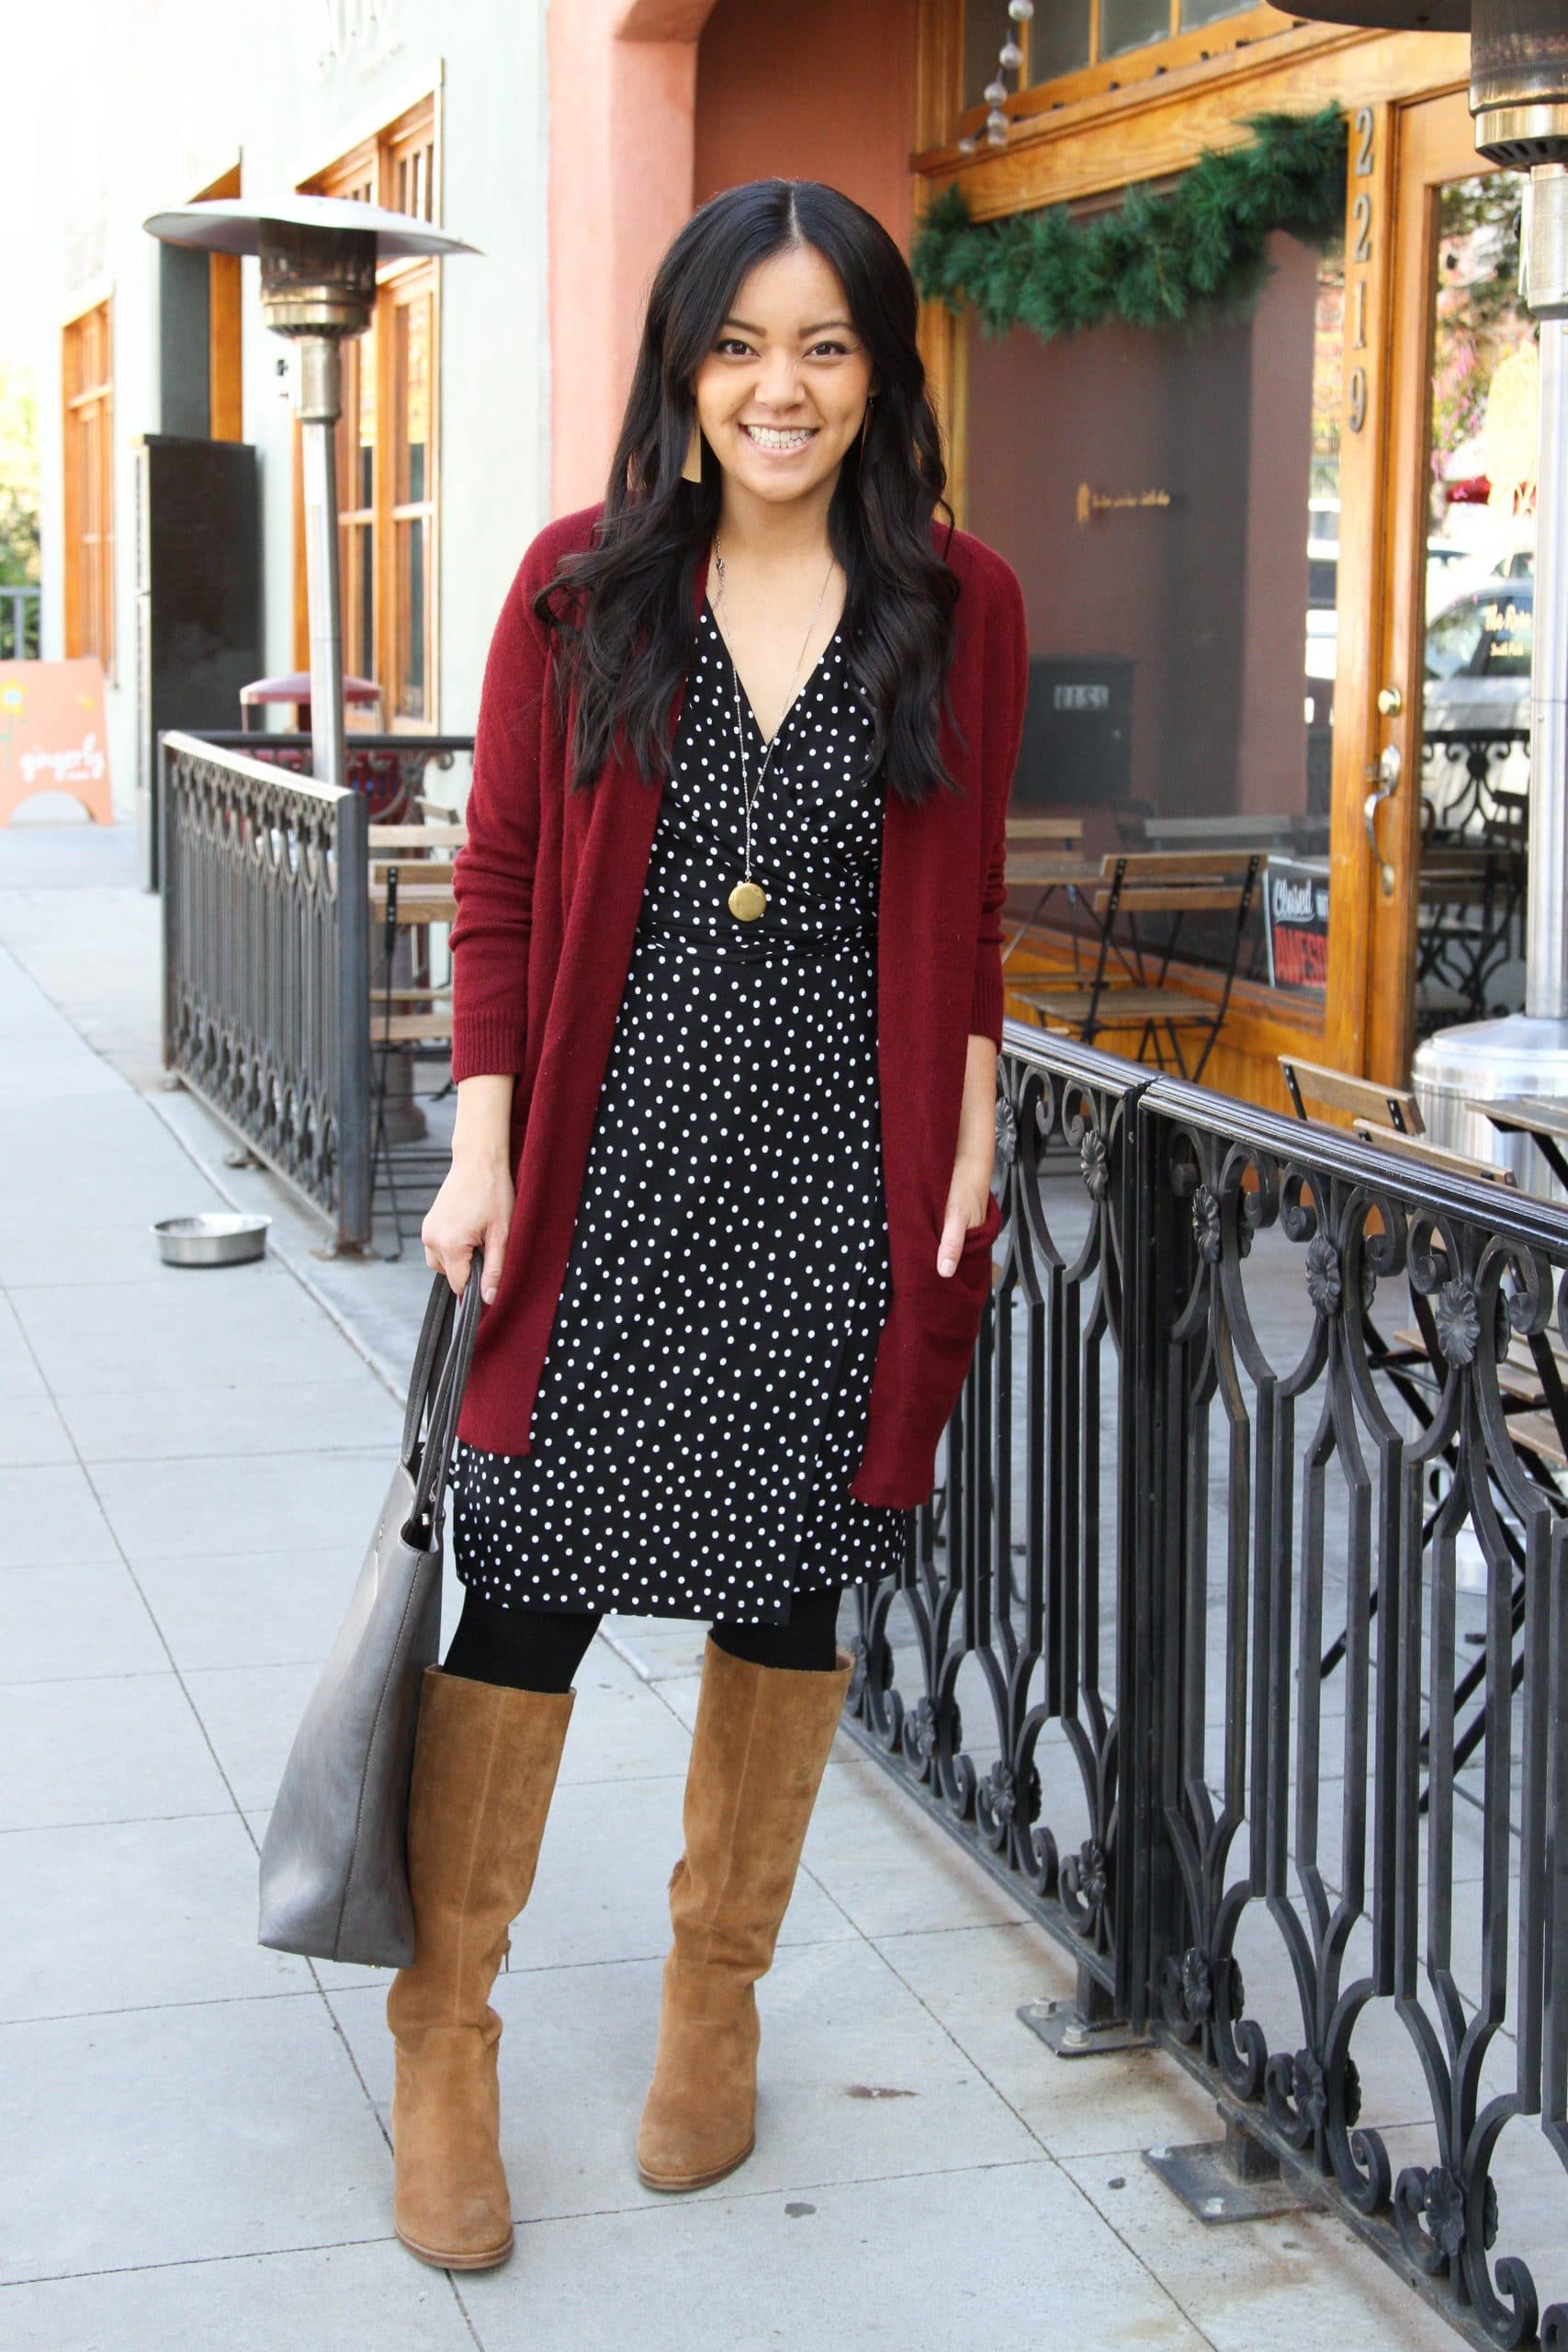 Winter Dress Outfit: black and white spotted dress + red cardigan + black tights + tan suede boots + grey tote + long gold circle pendant necklace + tan leather earrings